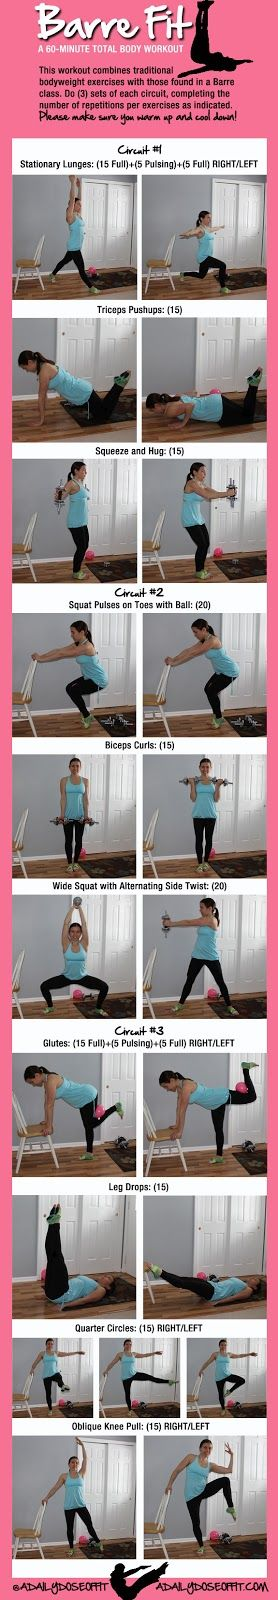 A Daily Dose of Fit: 60-Minute #Barre Workout #workoutwednesday